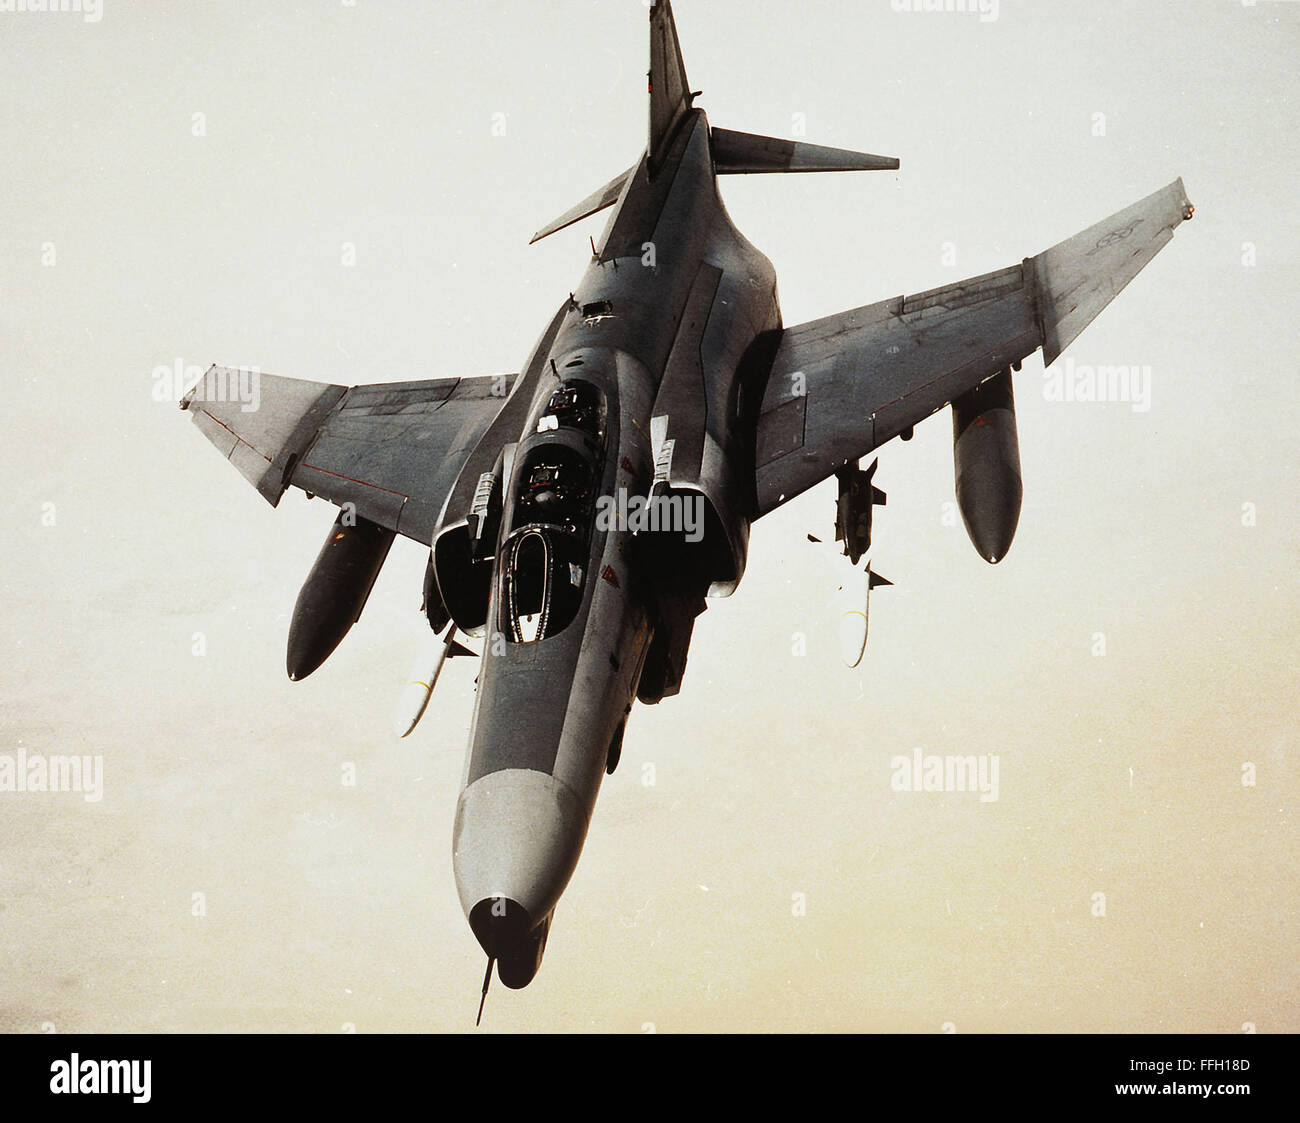 The F-4G was used against Iraqi military radar sites during Operation Desert Storm in 1991 and in follow-on strikes. - Stock Image